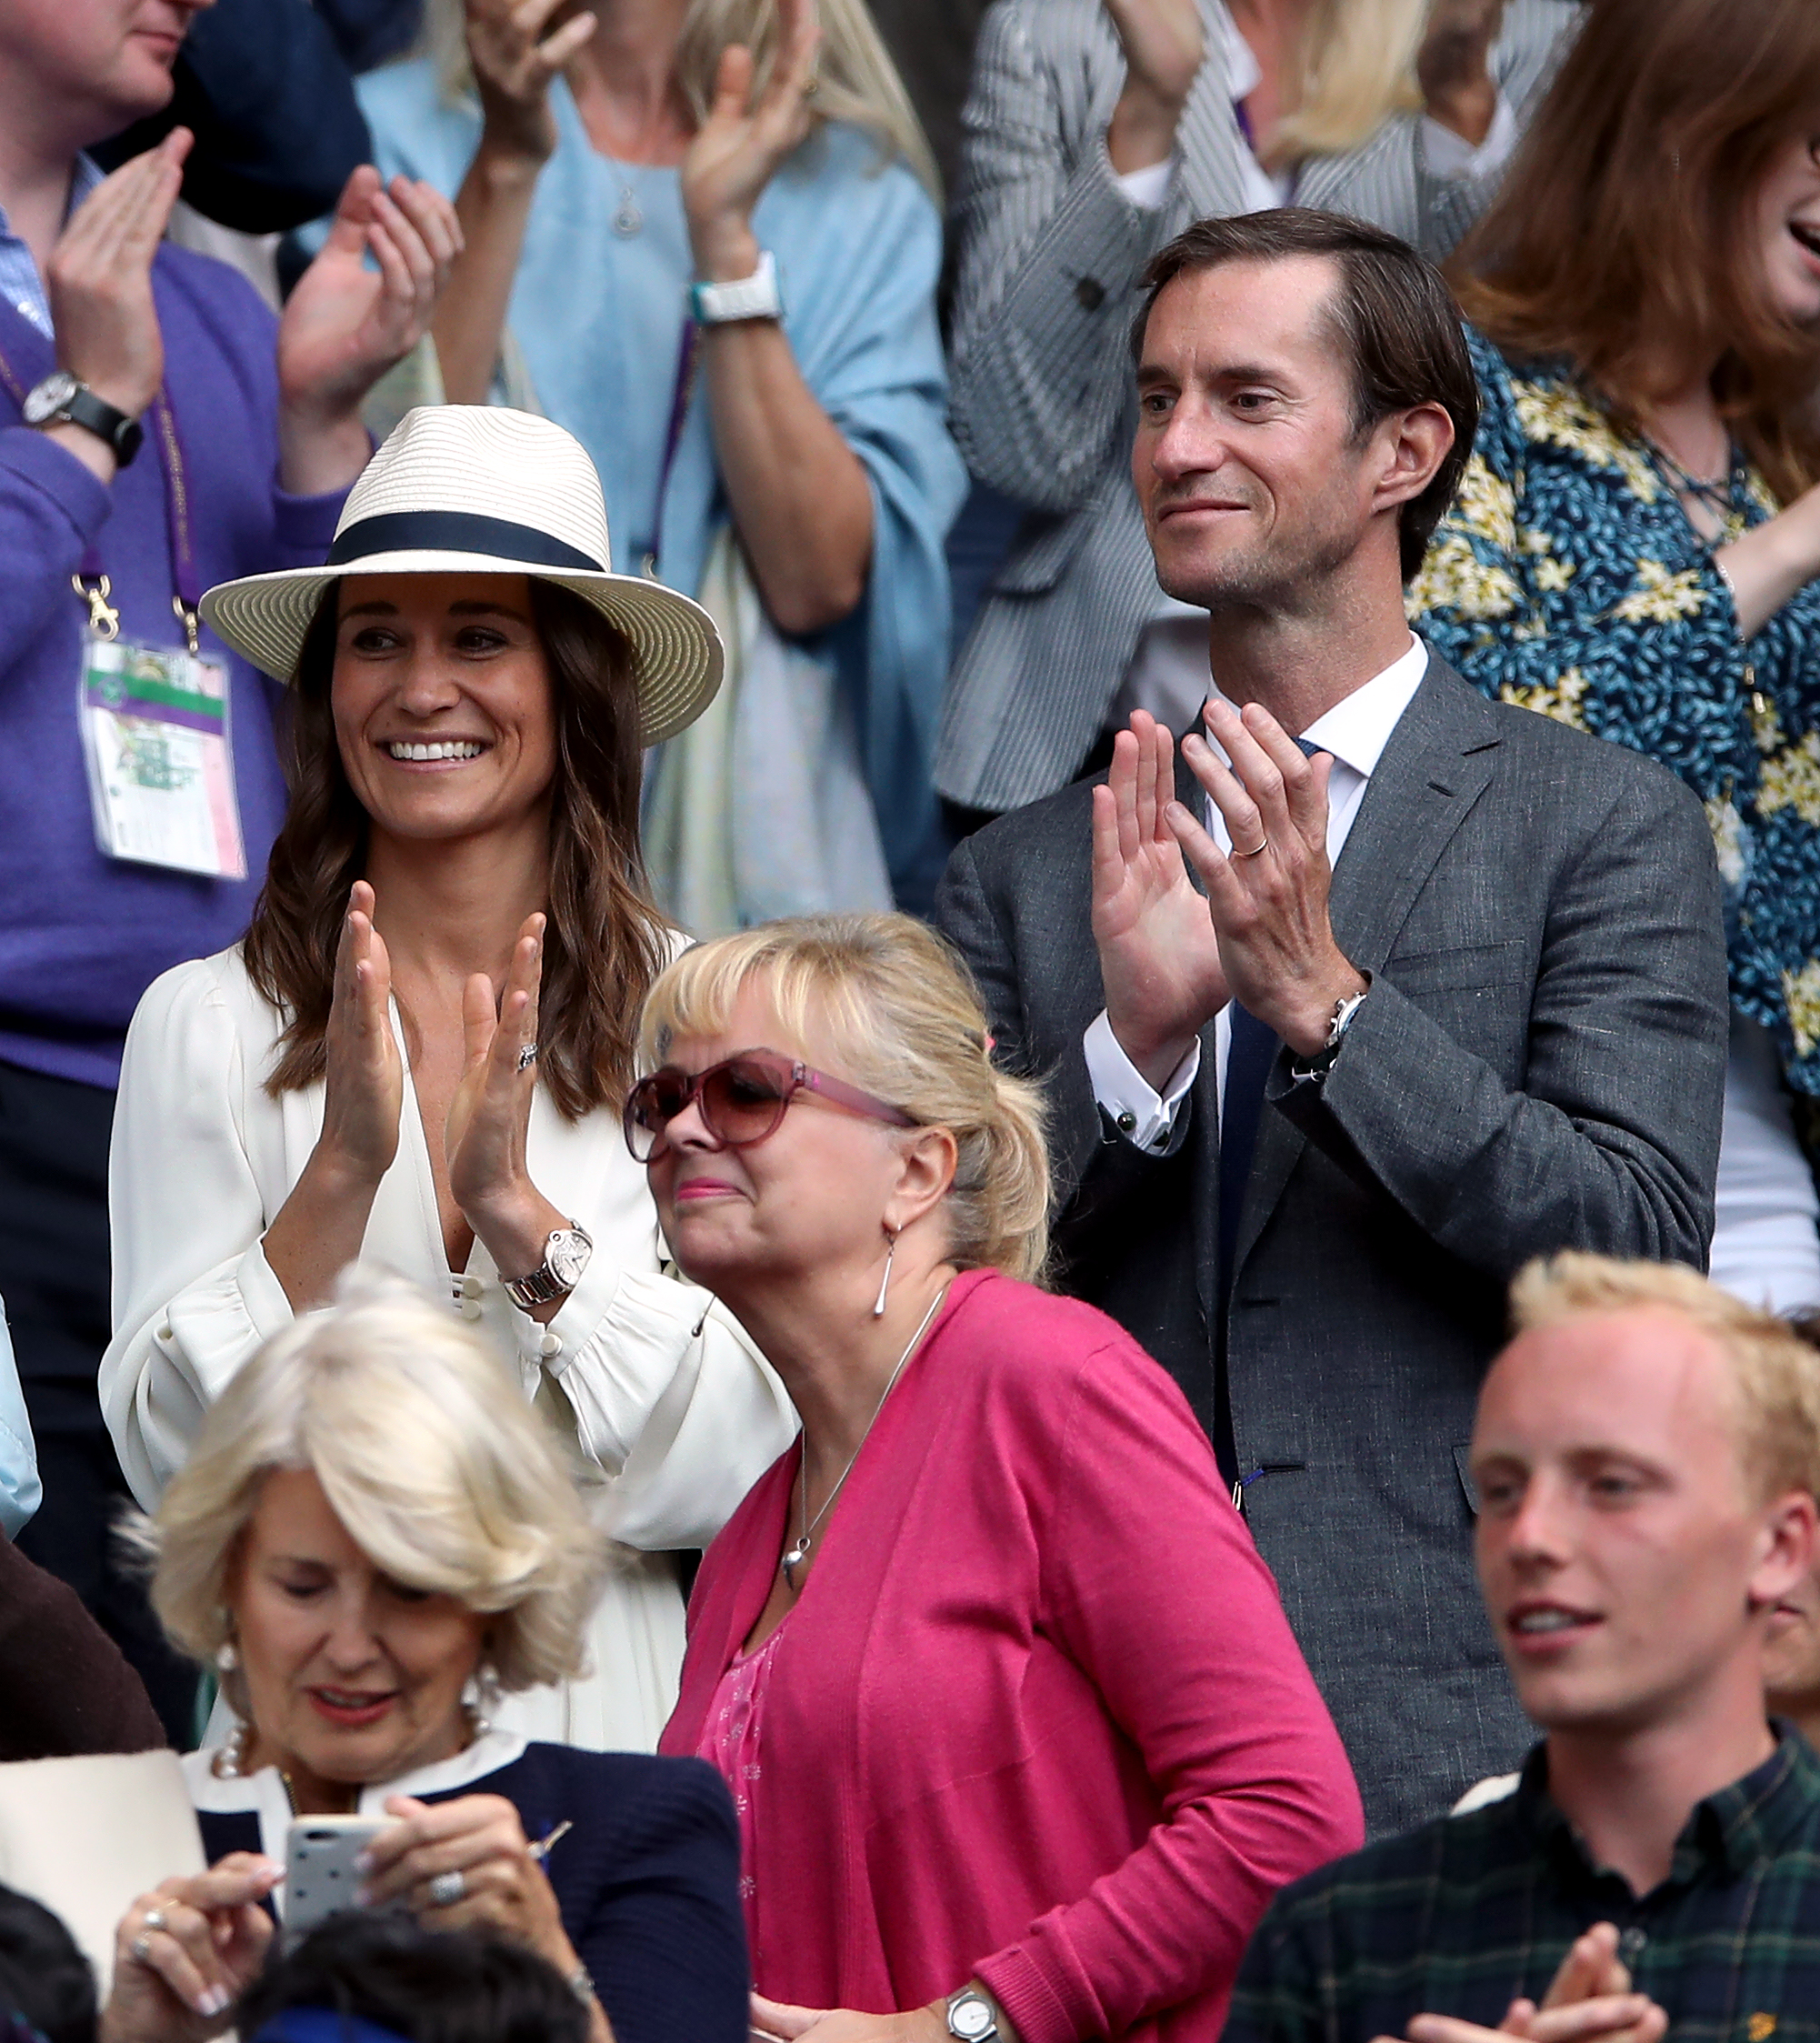 Pippa Middleton and her husband James Matthews applaud Roger Federer after his win on day eleven of the Wimbledon Championships at The All England Lawn Tennis and Croquet Club, Wimbledon. (Photo by John Walton/PA Images via Getty Images)